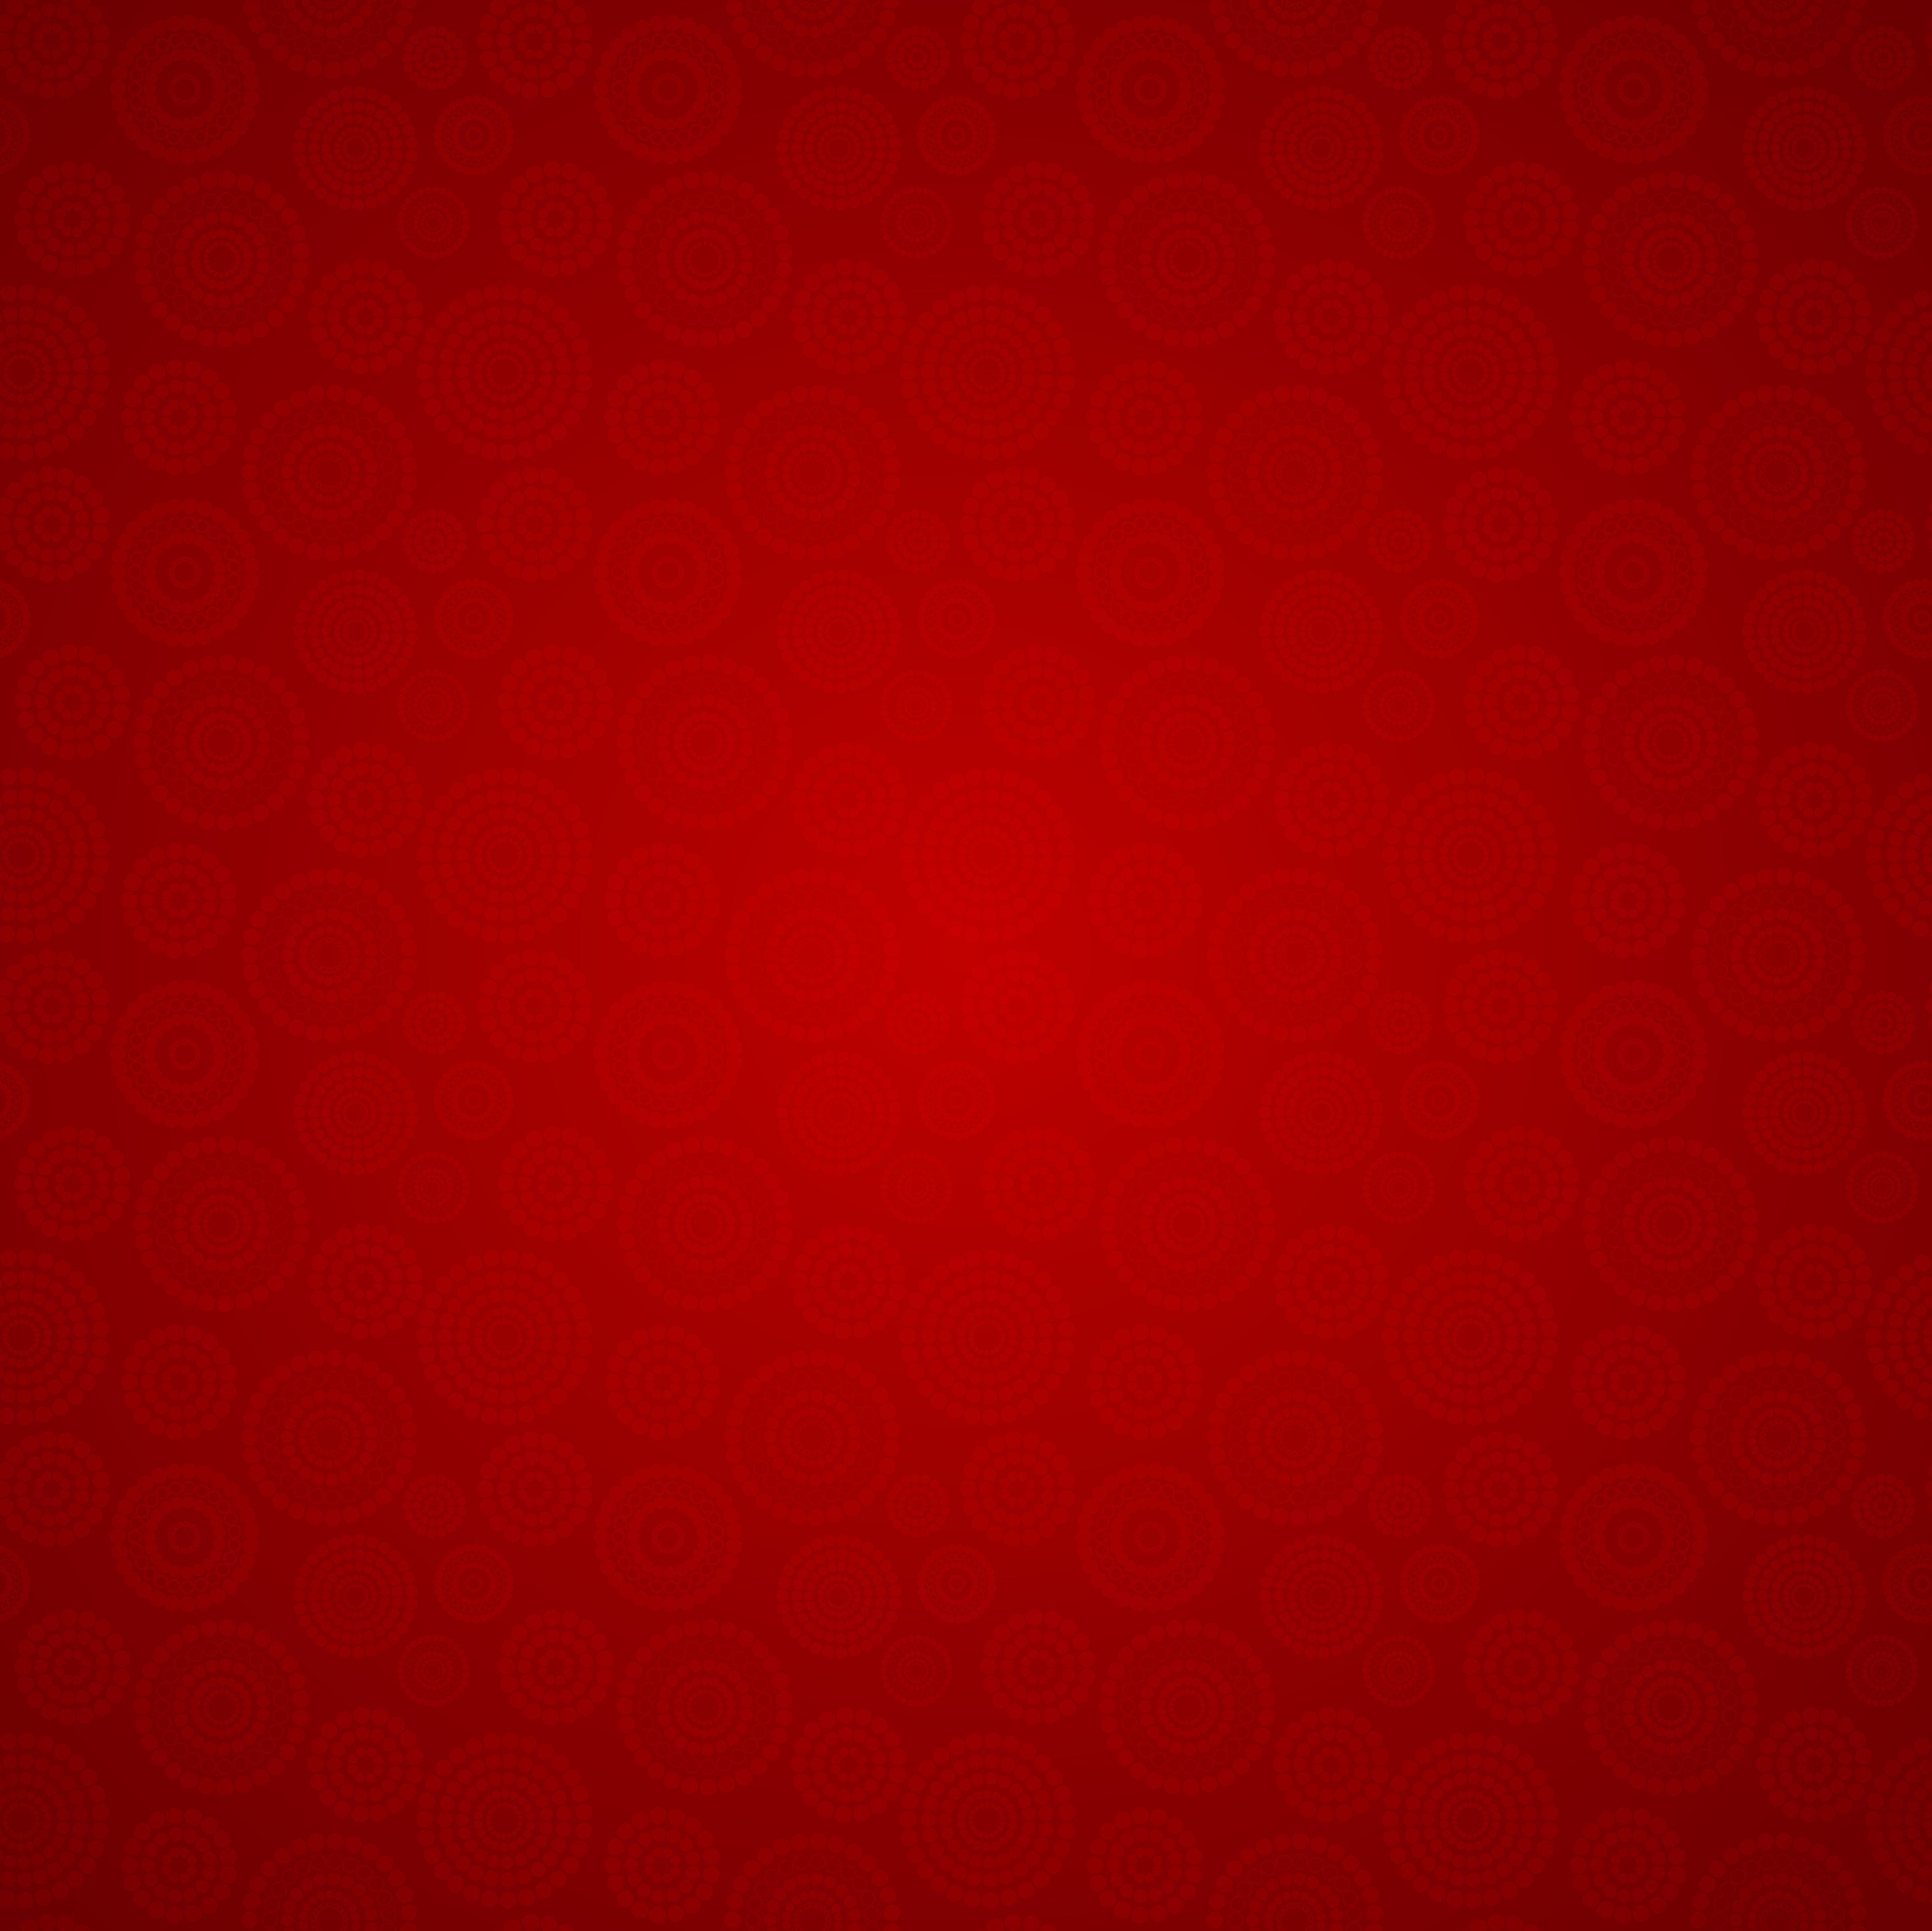 Ornamental Red Background Gallery Yopriceville   High Quality 6266x6263